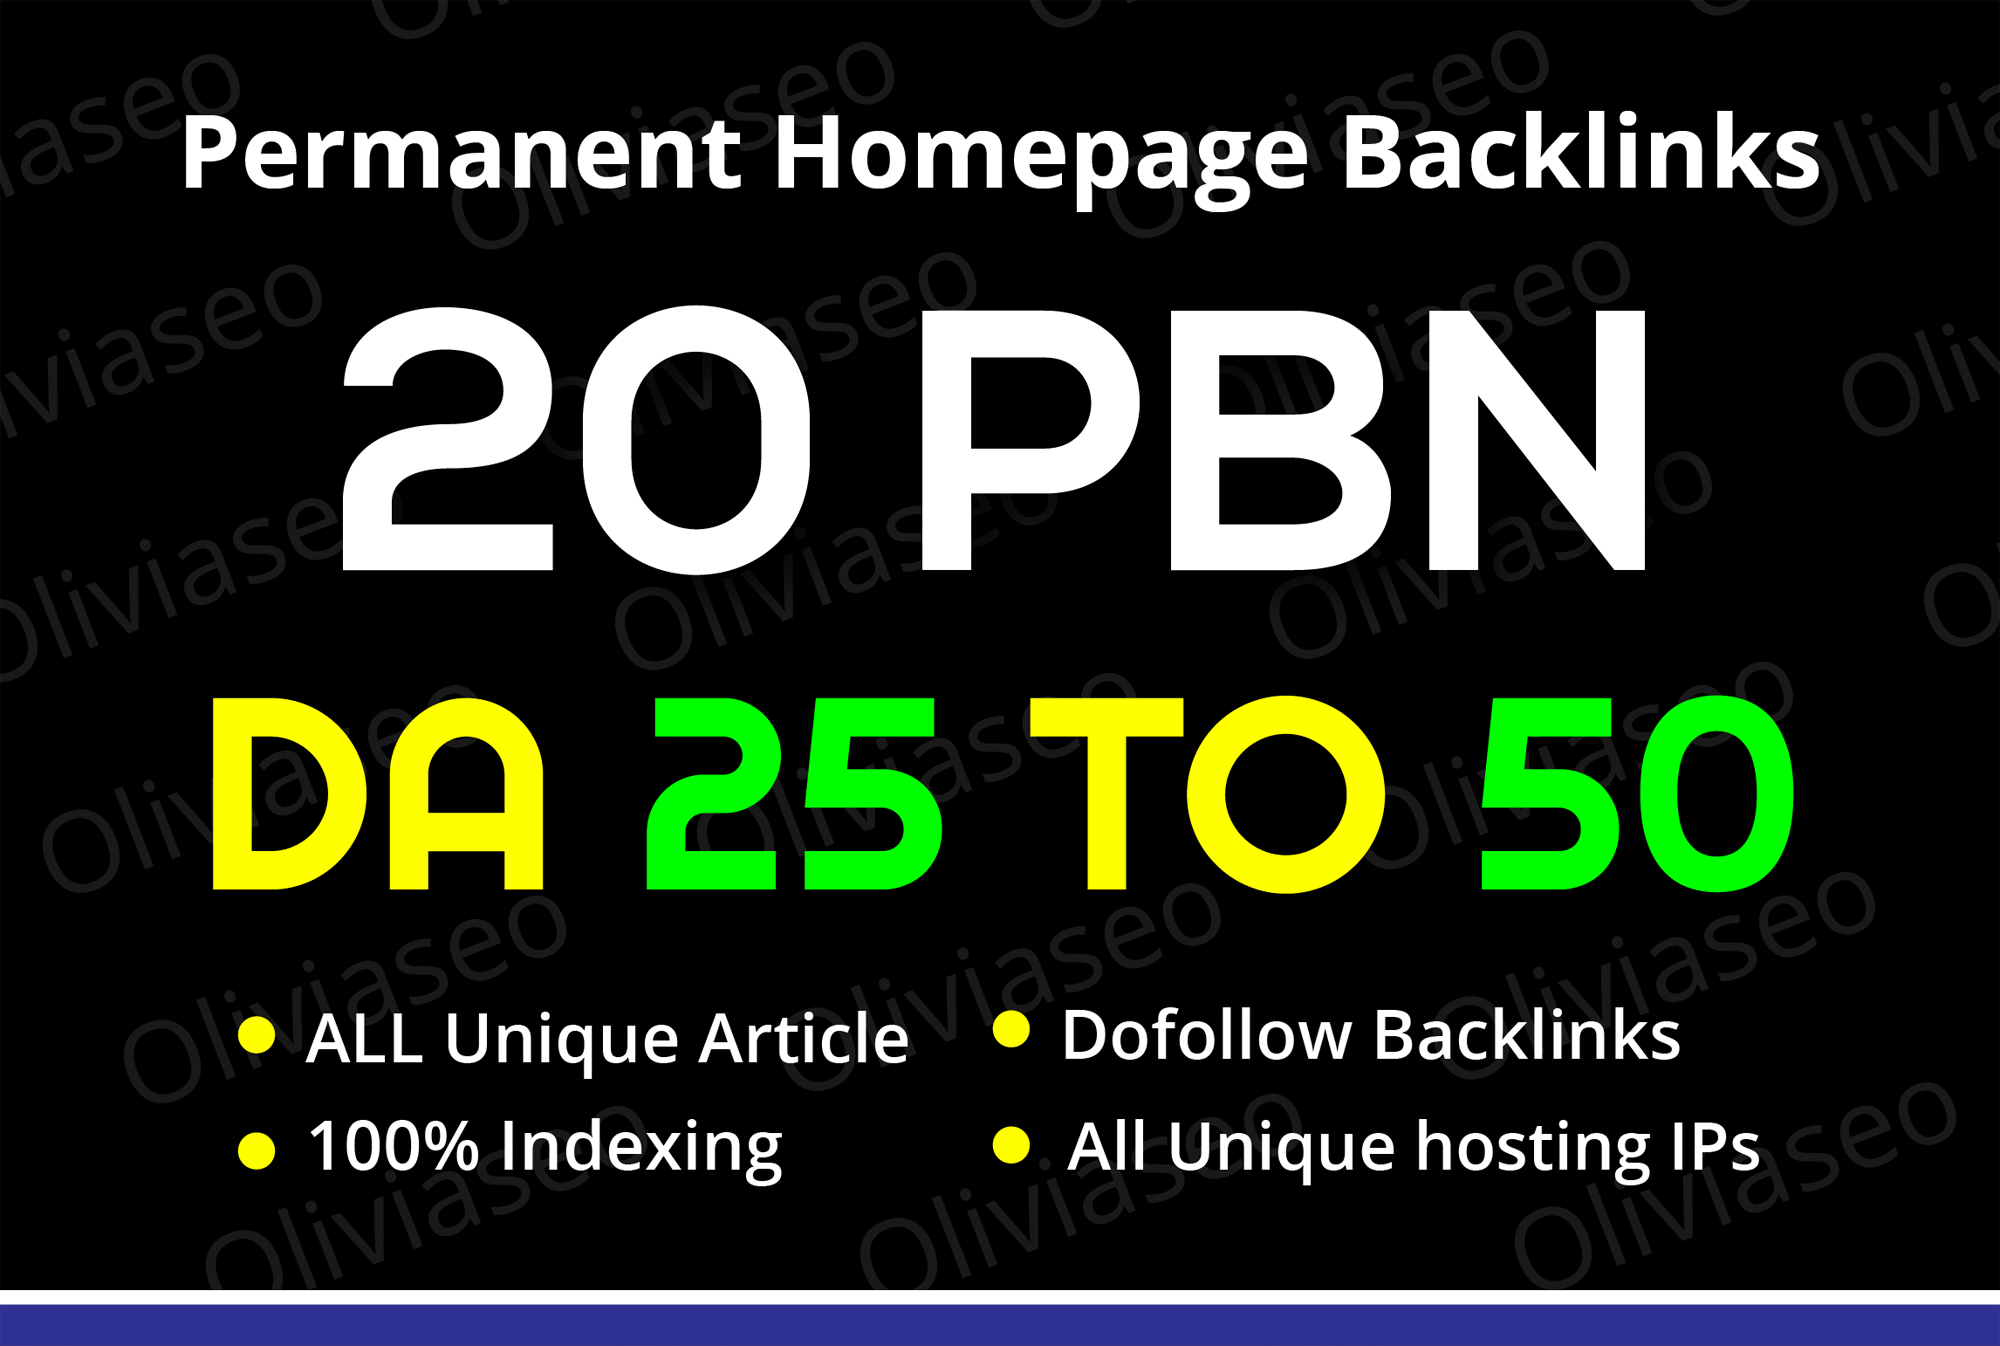 Build 20 Permanent PBN Backlinks With Dofollow And High Metrix And Lowest Spam Score